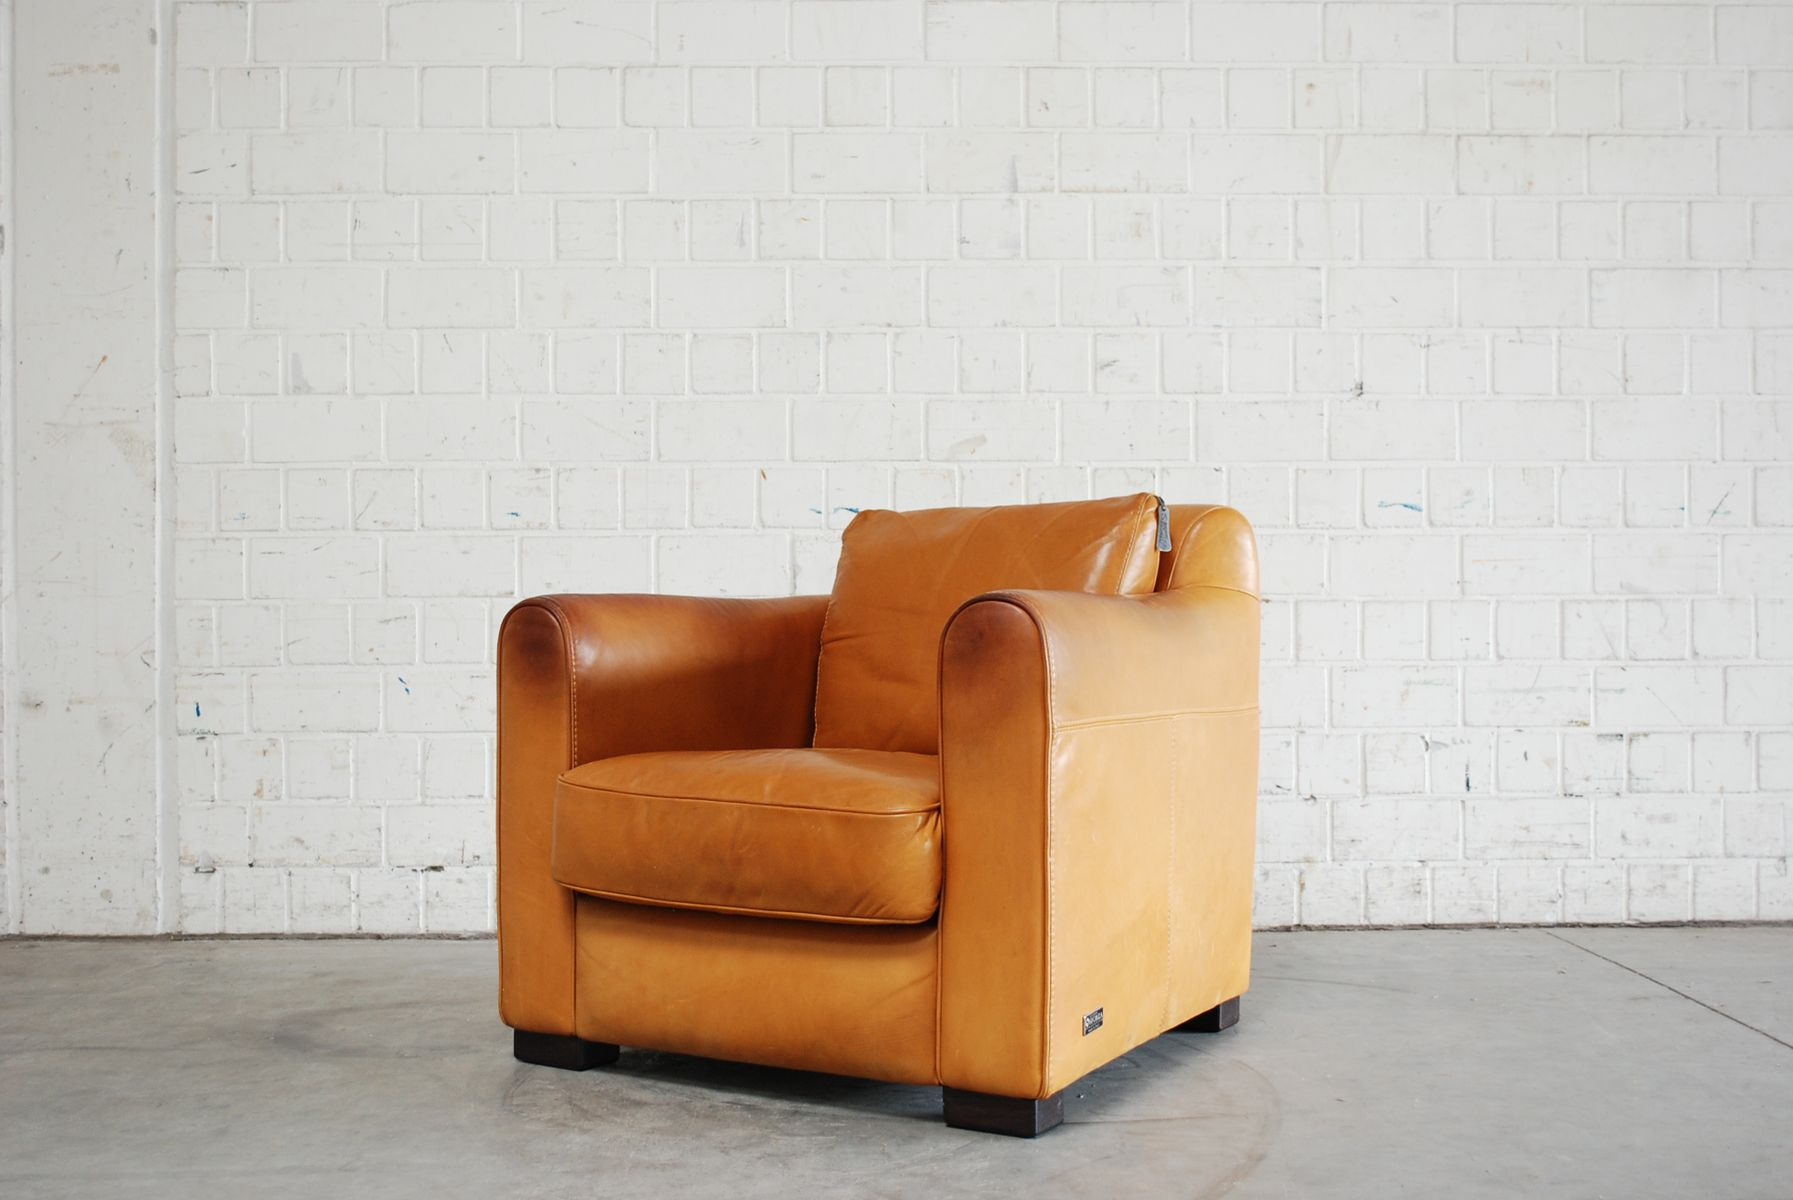 Vintage Italian Cognac Leather Club Lounge Chair from Giovanni